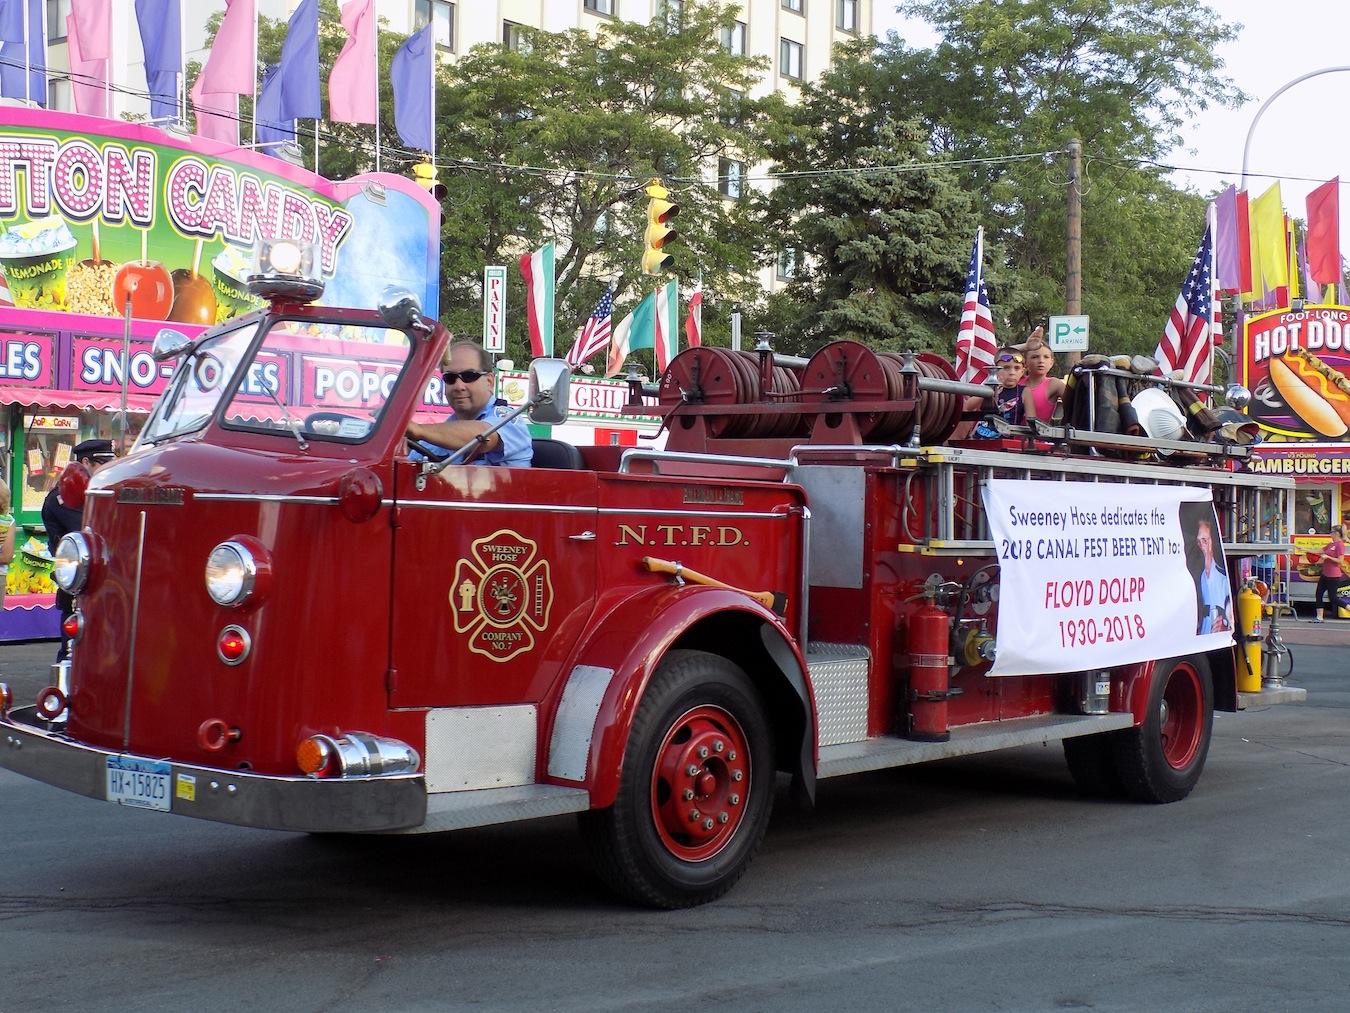 A classic North Tonawanda Fire Department truck during last year's Canal Fest parade. (Photo by Nick Donoughe)